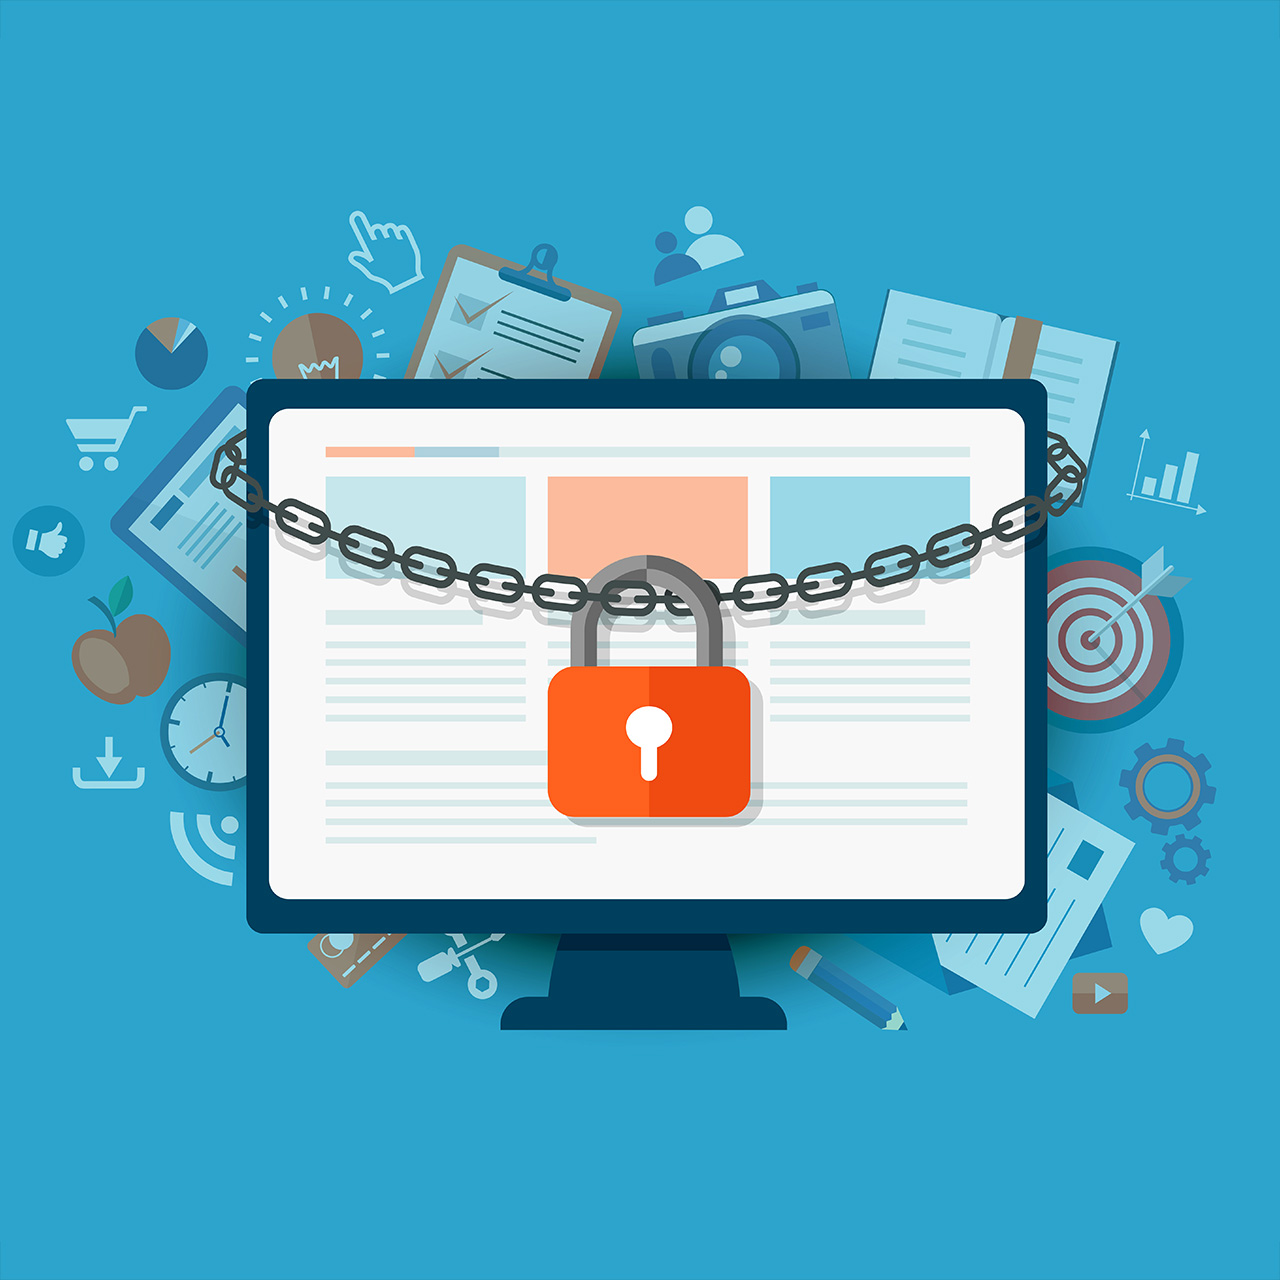 10 tips to protect your privacy online | Kaspersky official blog